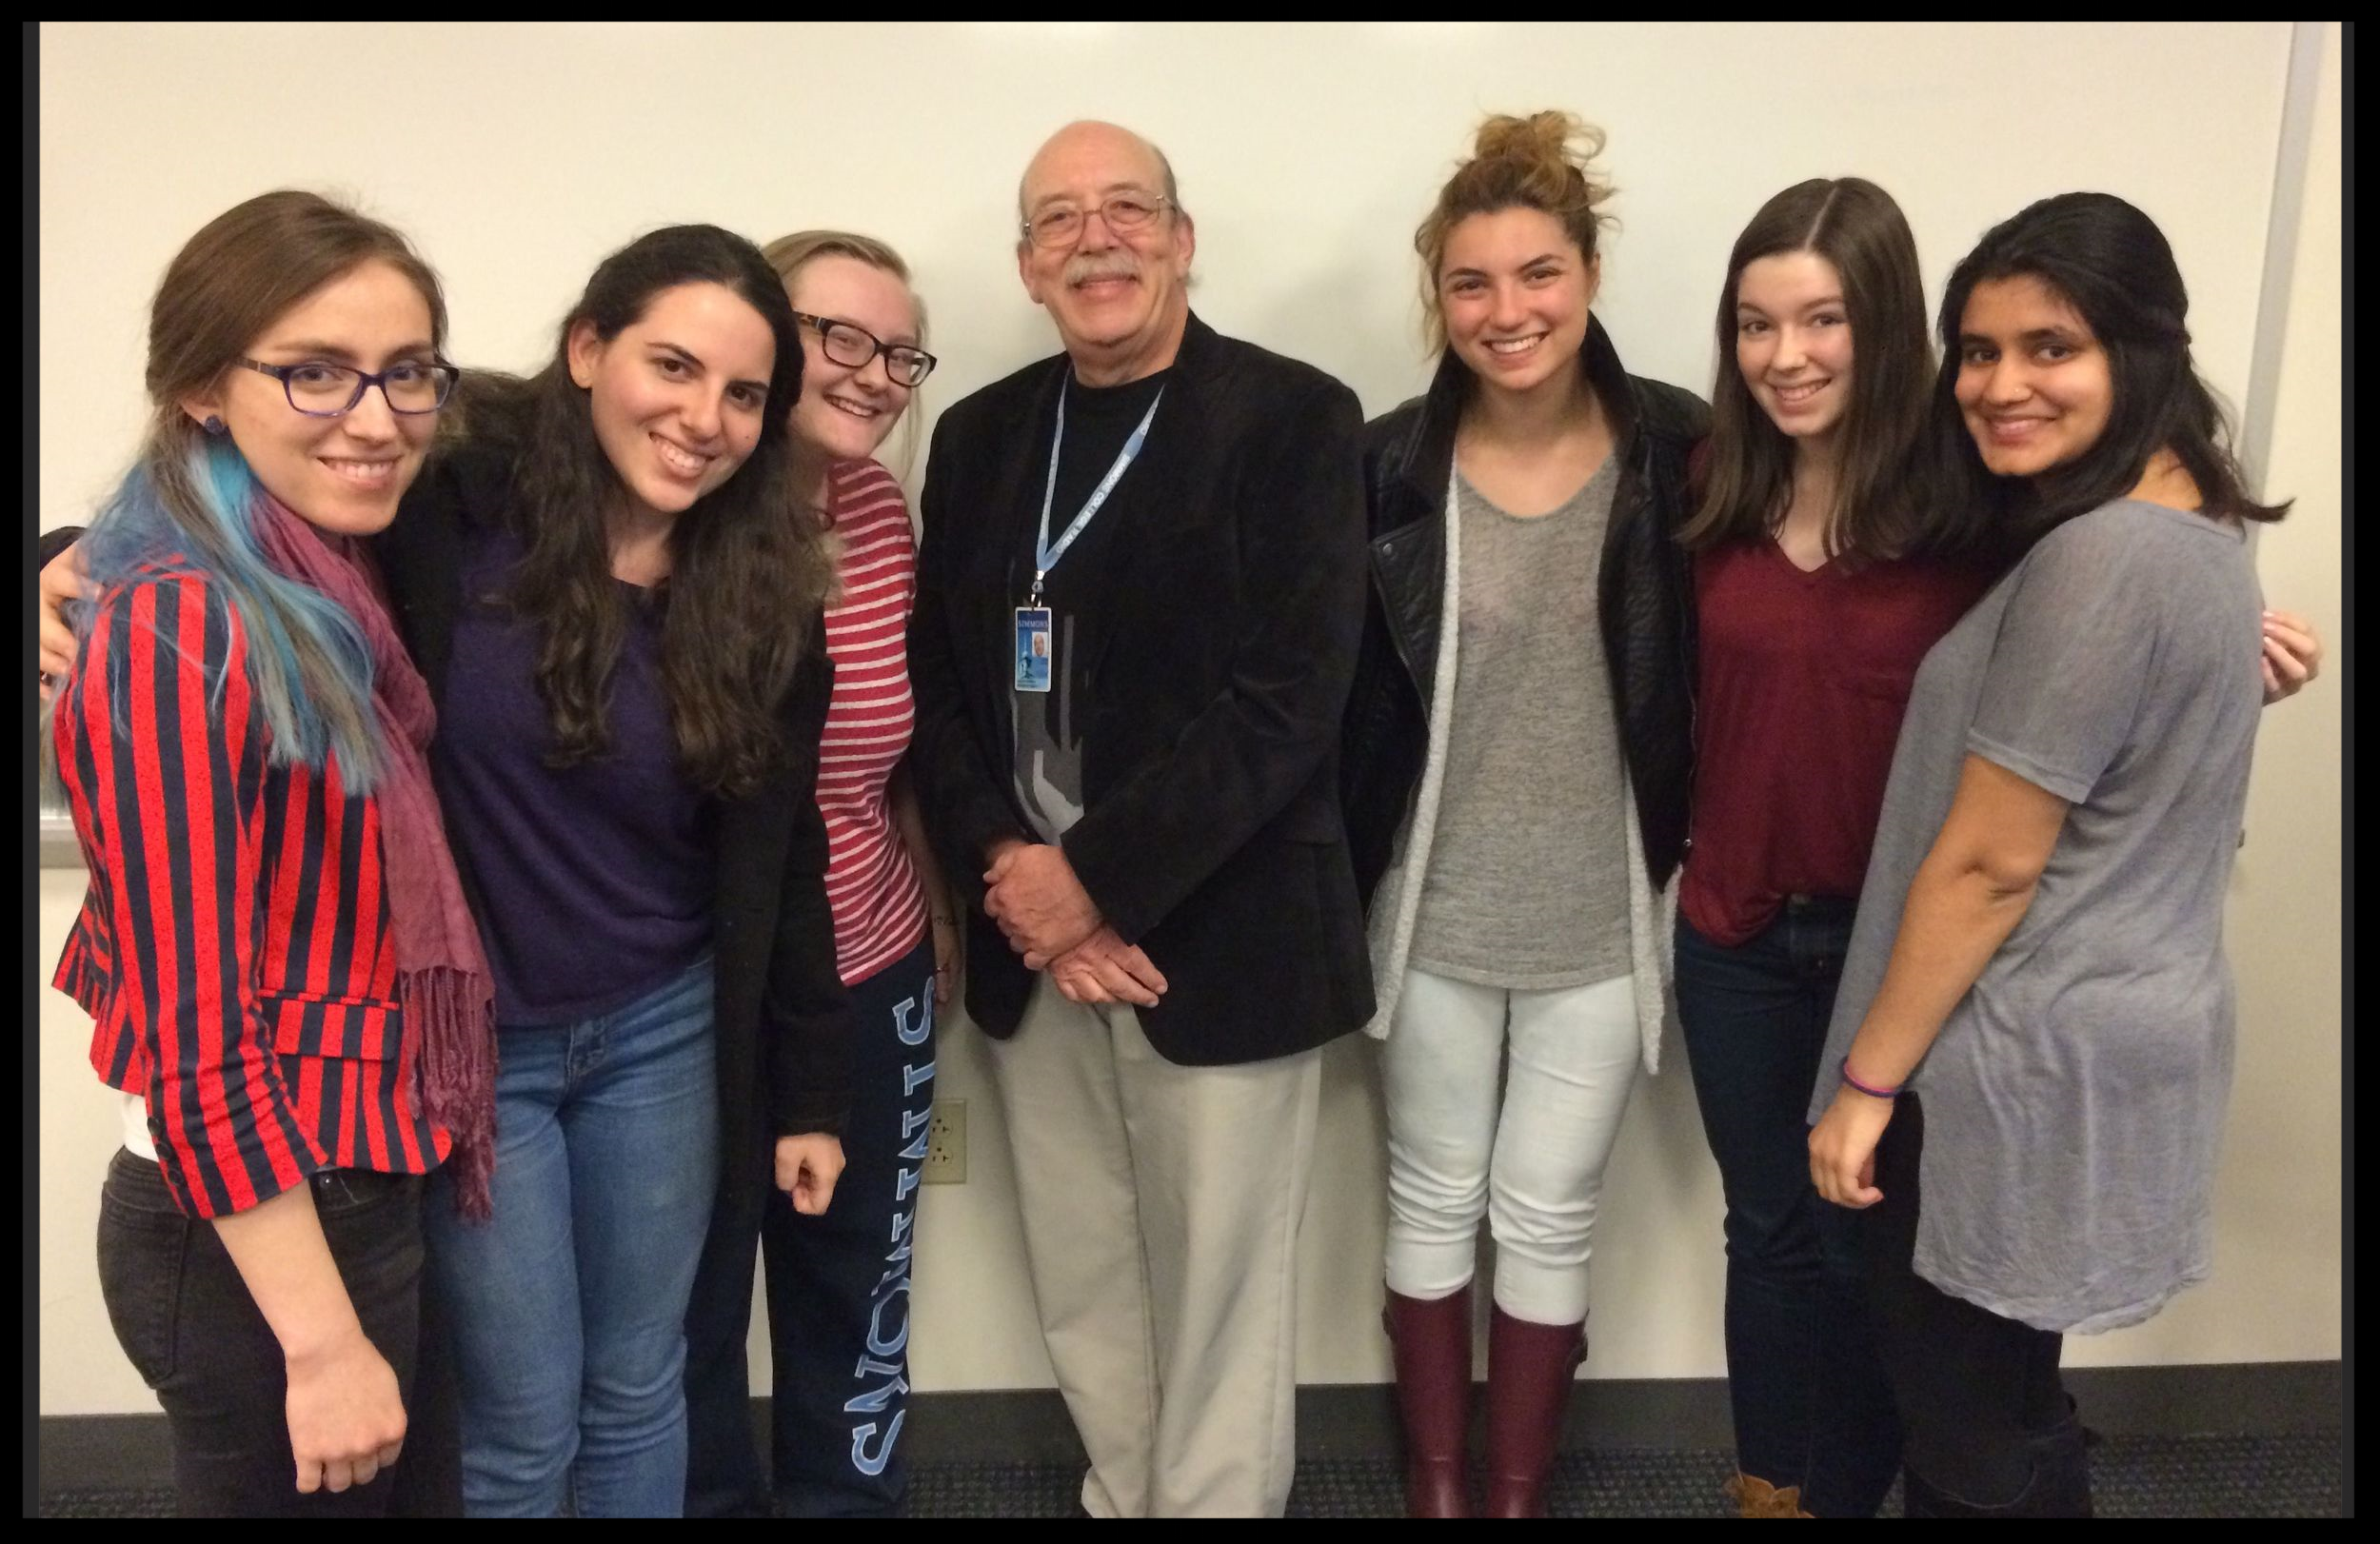 Professor Len Mailloux and some of the amazing Simmons University students in his Globalization class.